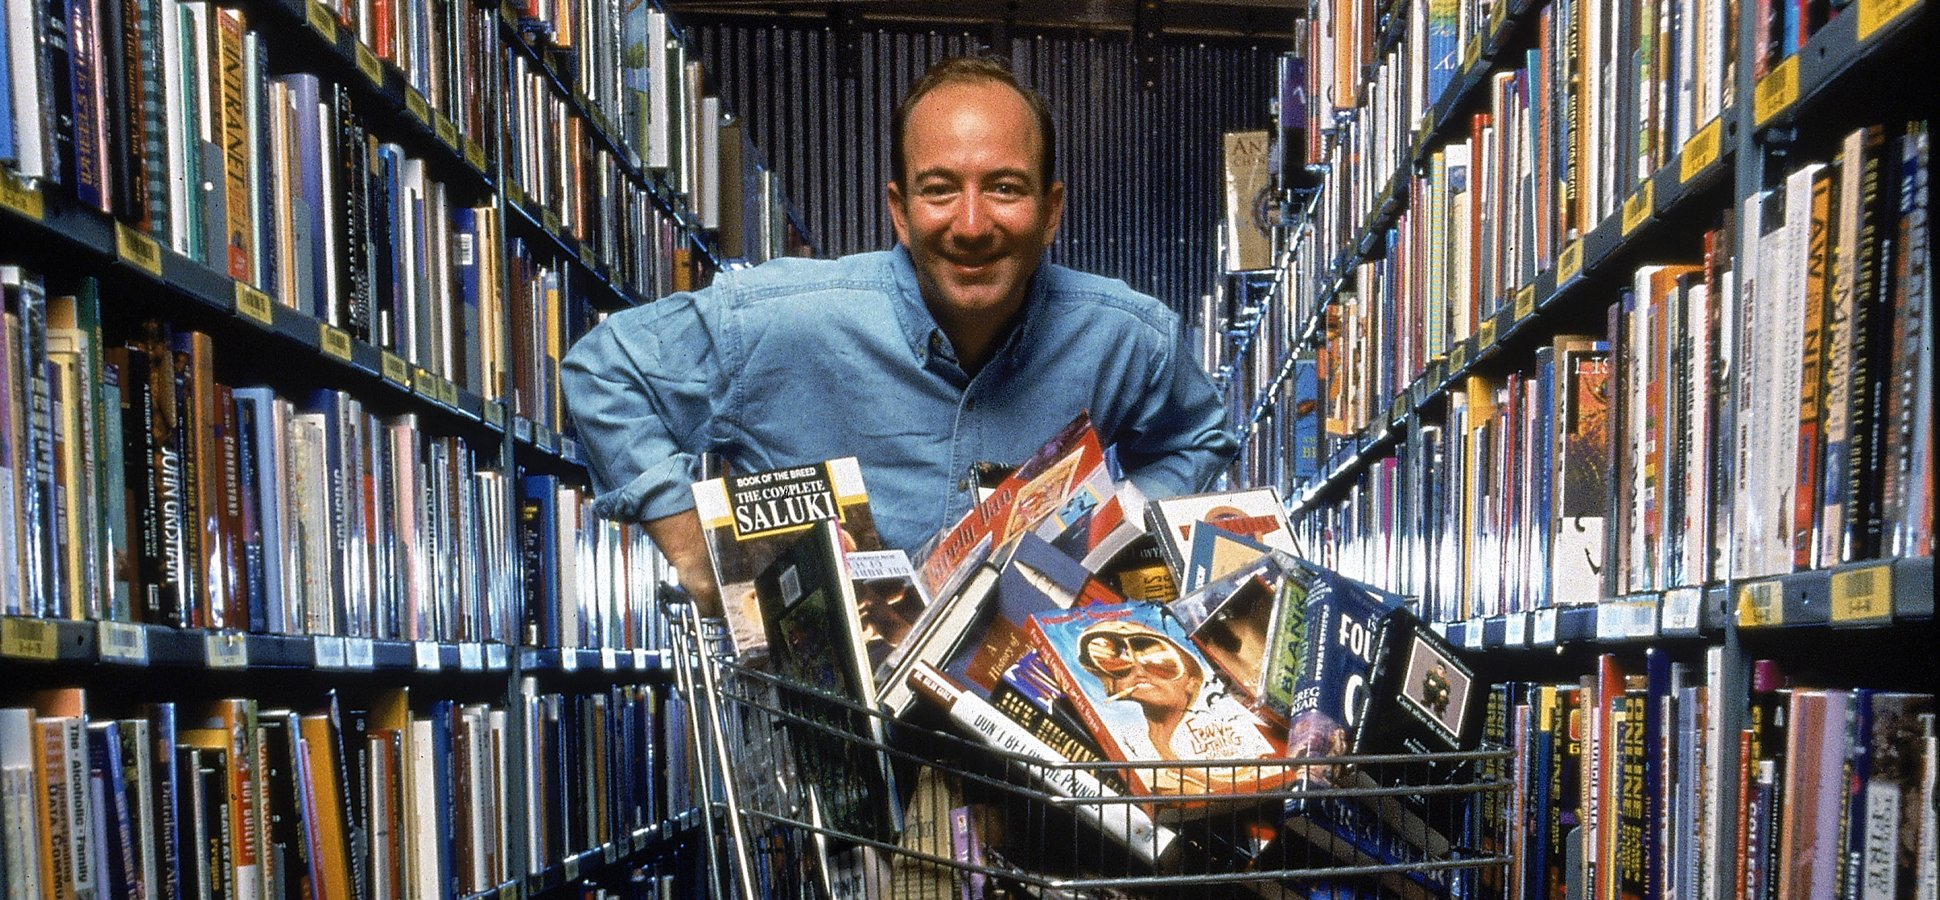 Amazon Was Founded 25 Years Ago This Friday. Here's What the World Was Like When Jeff Bezos Incorporated the Company in 1994